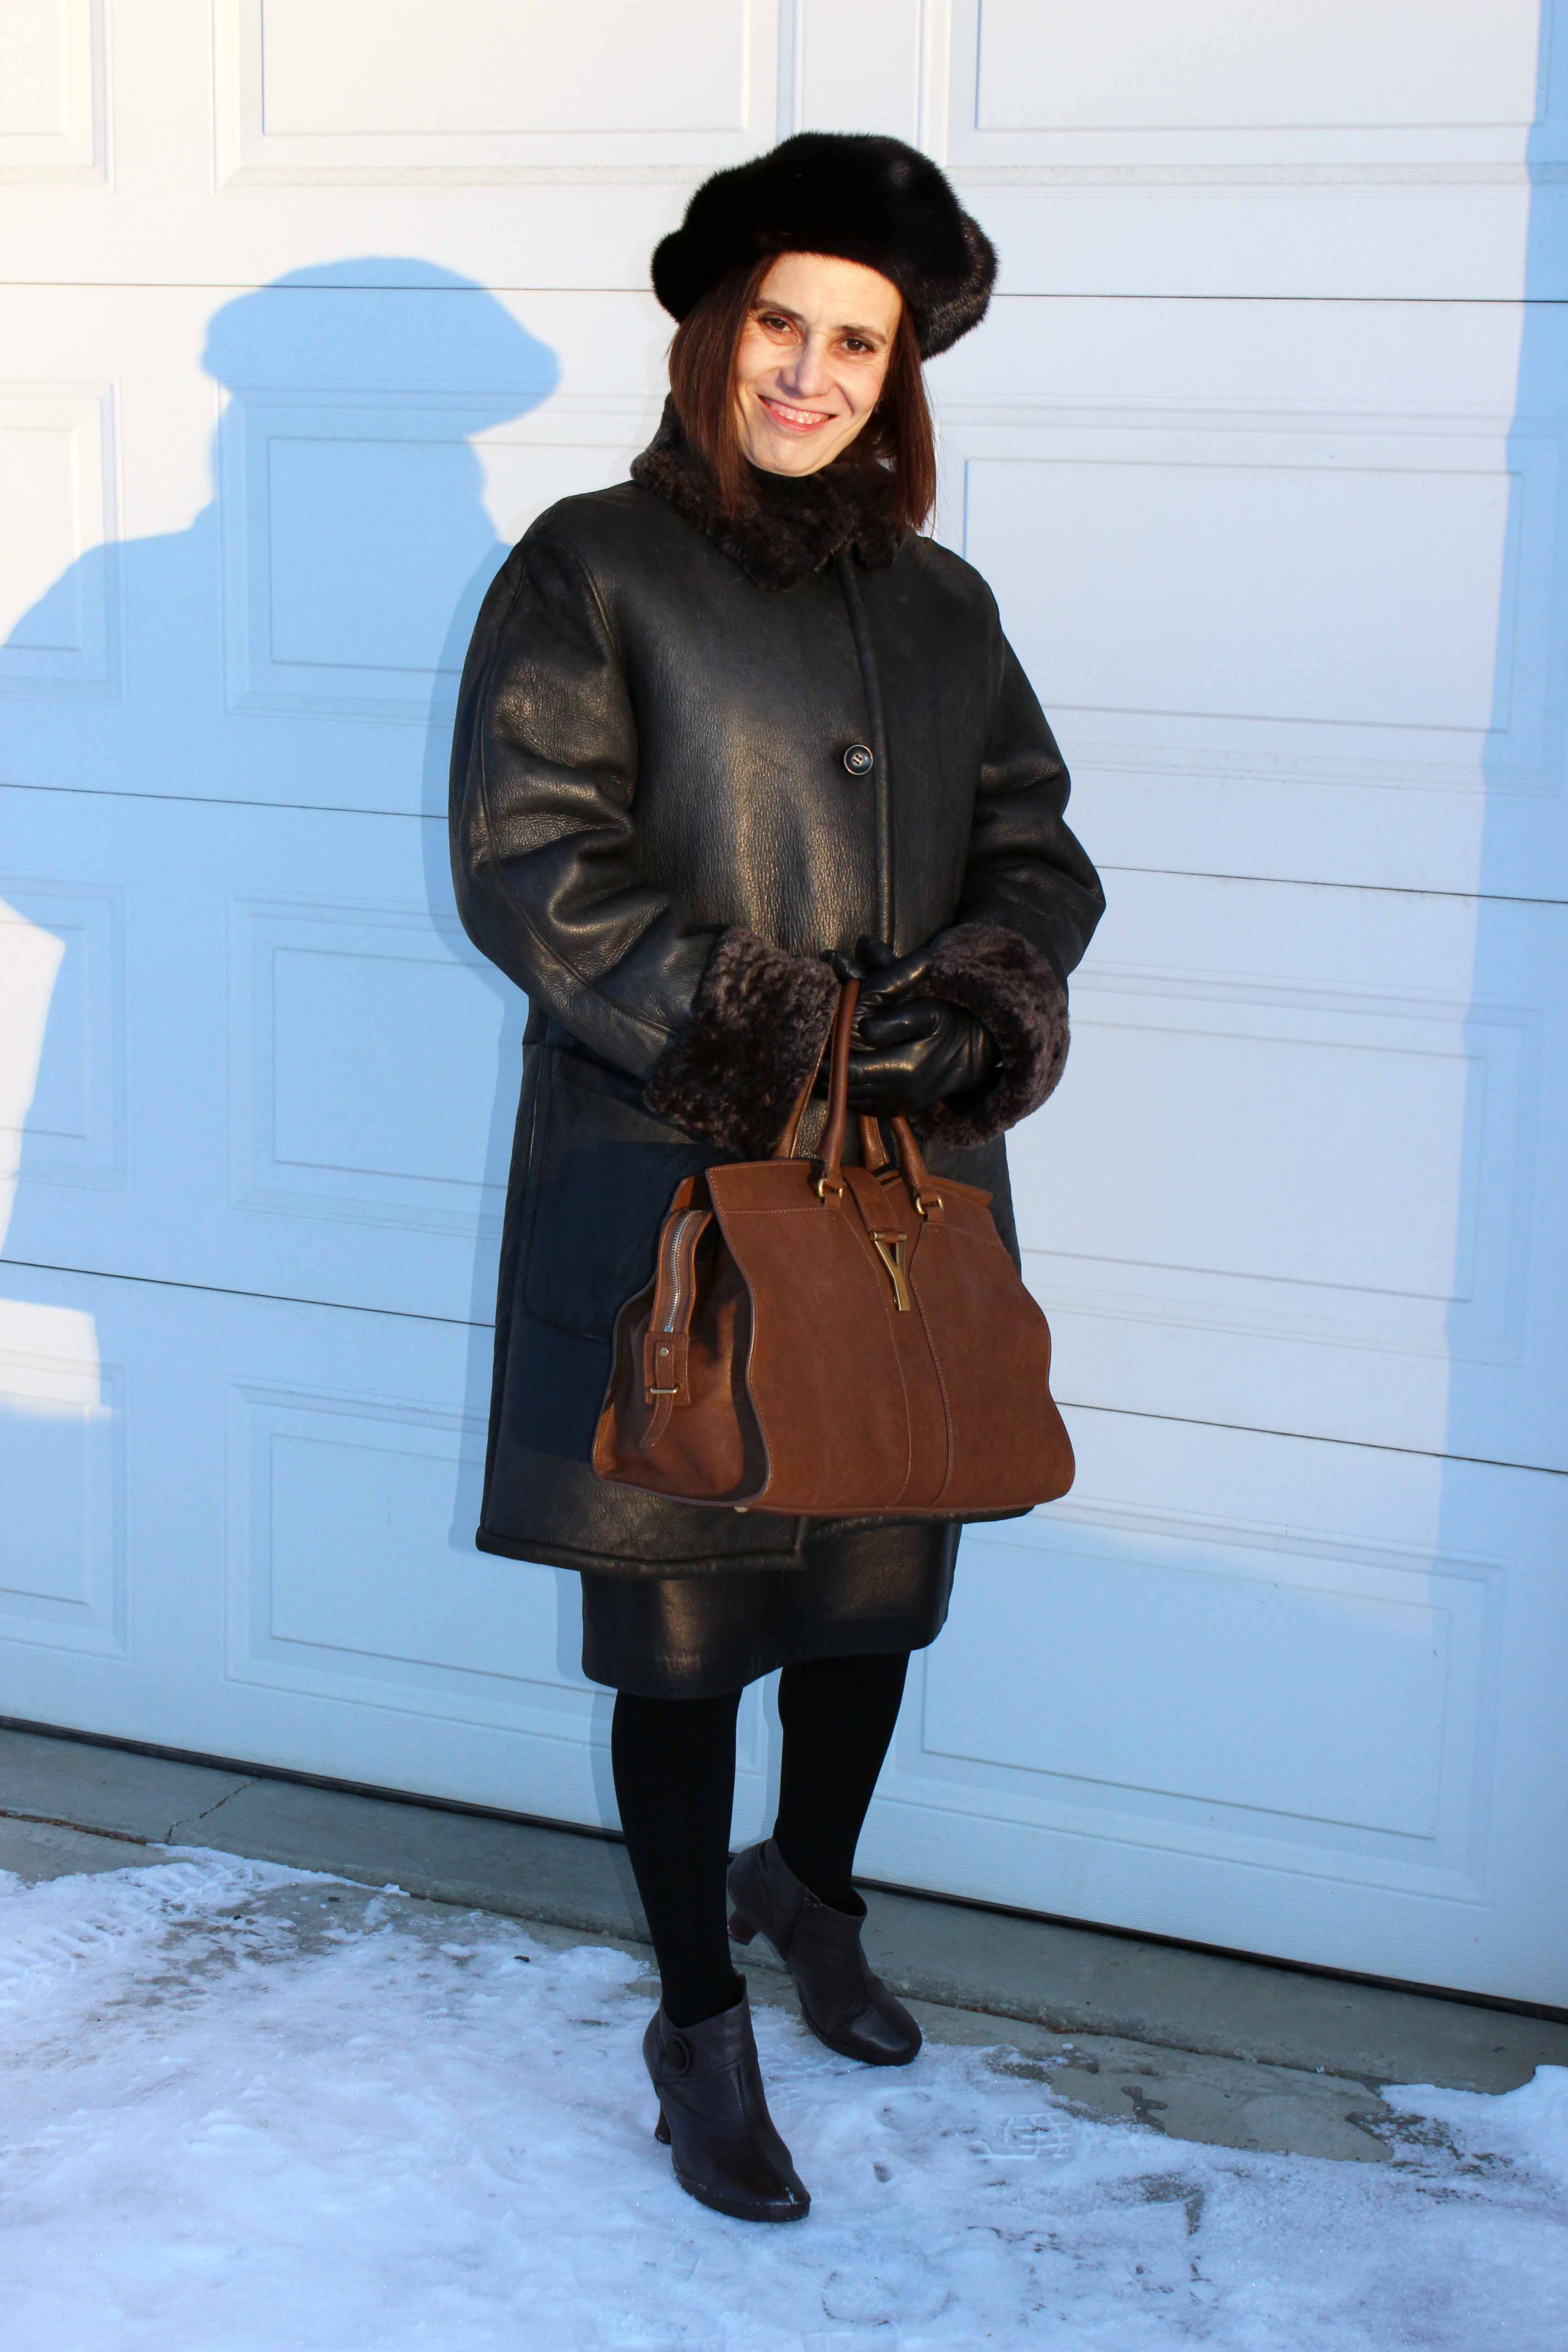 woman in shearling coat and hat